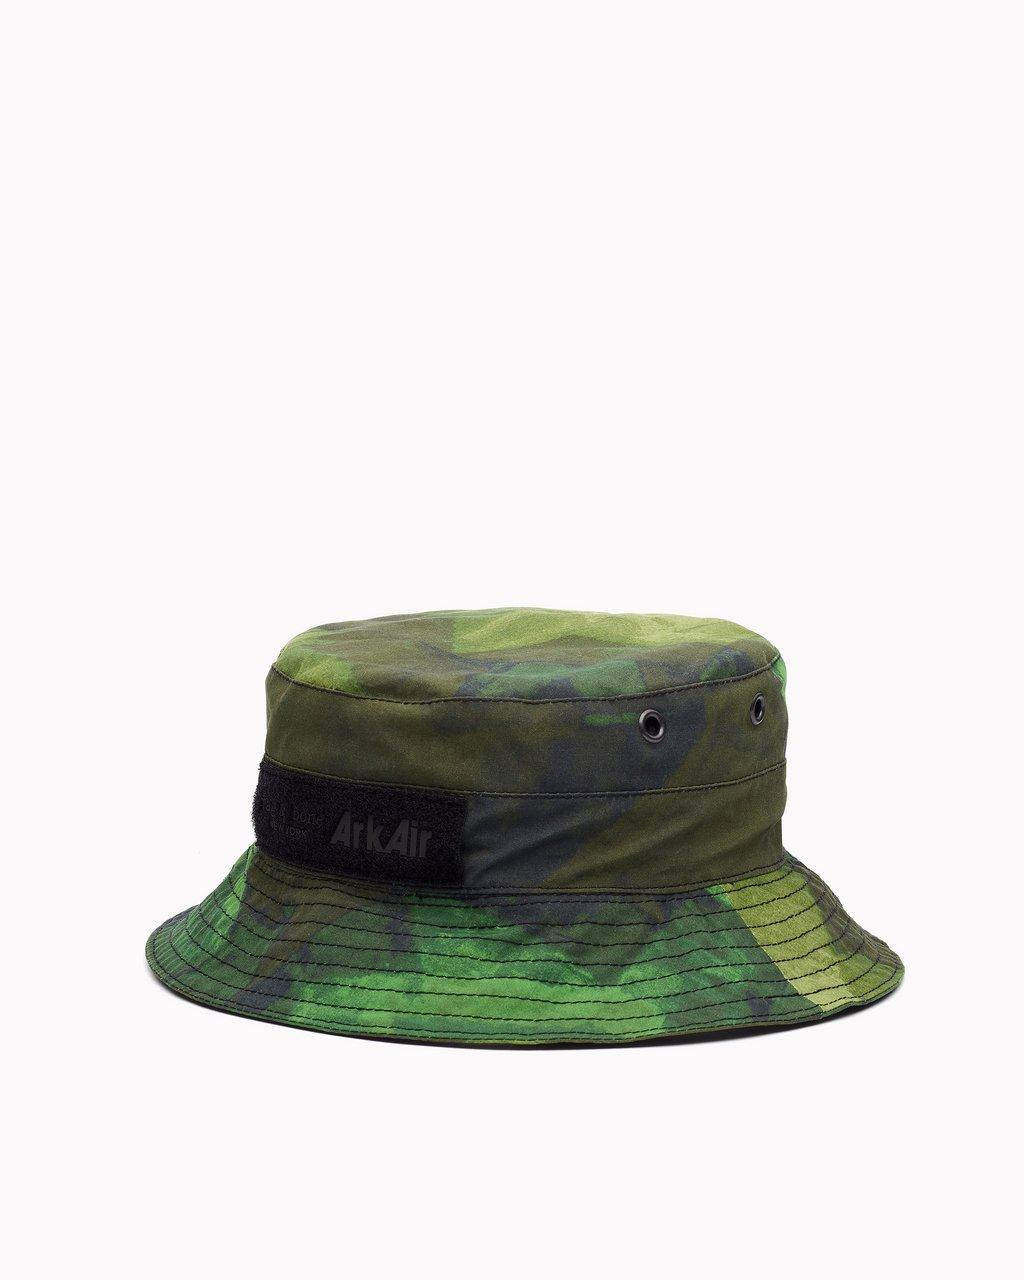 ARKAIR BUCKET HAT - EXCLUSIVE